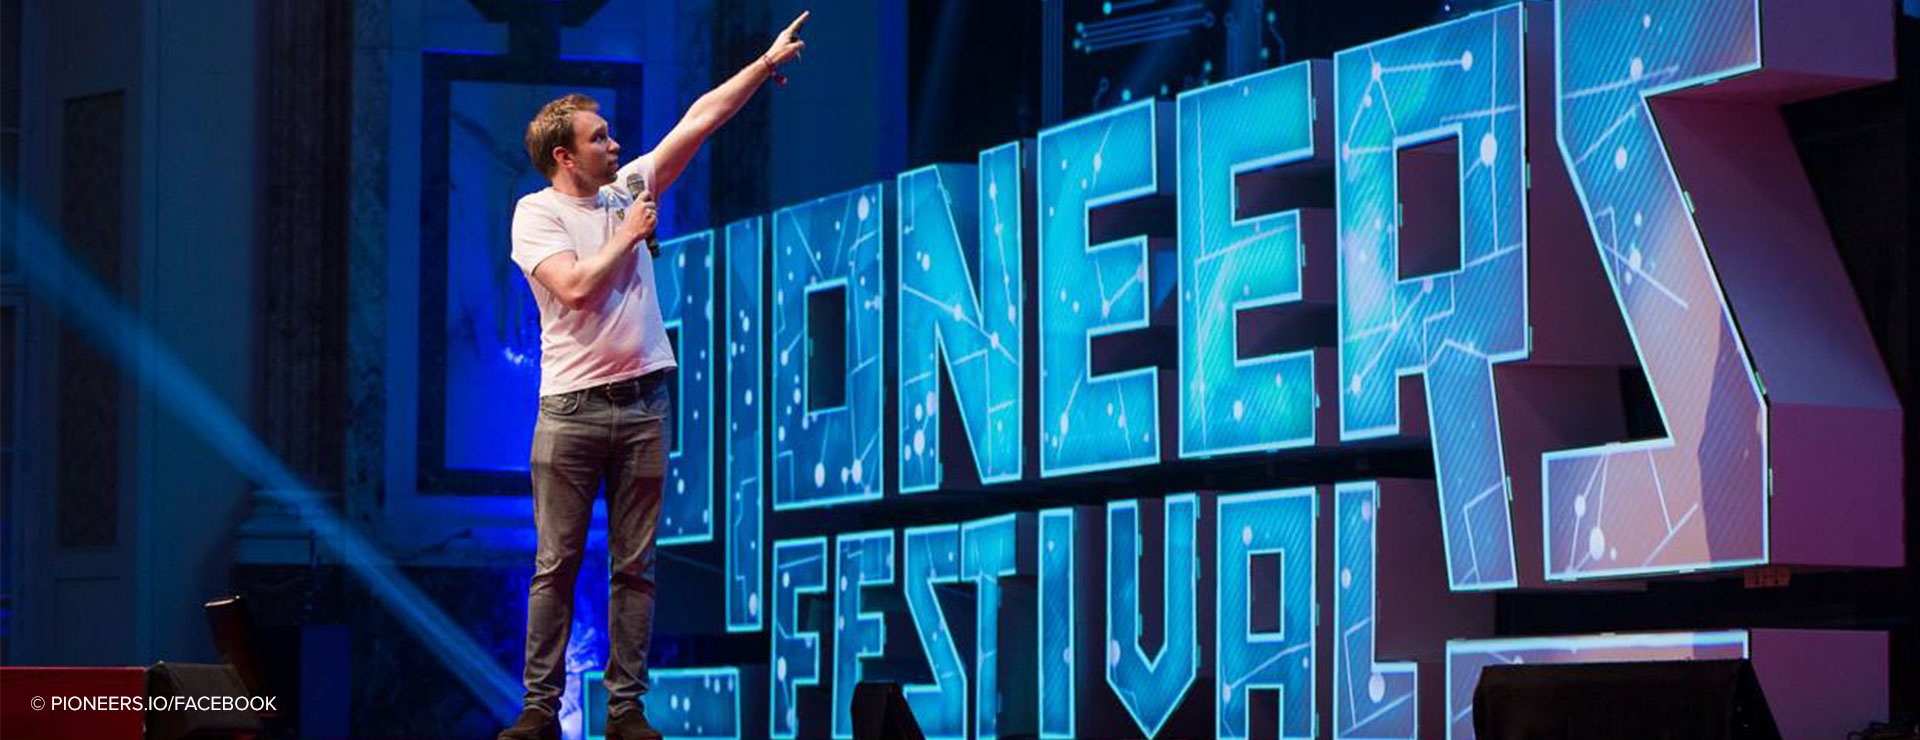 Pioneers Festival: Future meets Technology meets Entrepreneurship